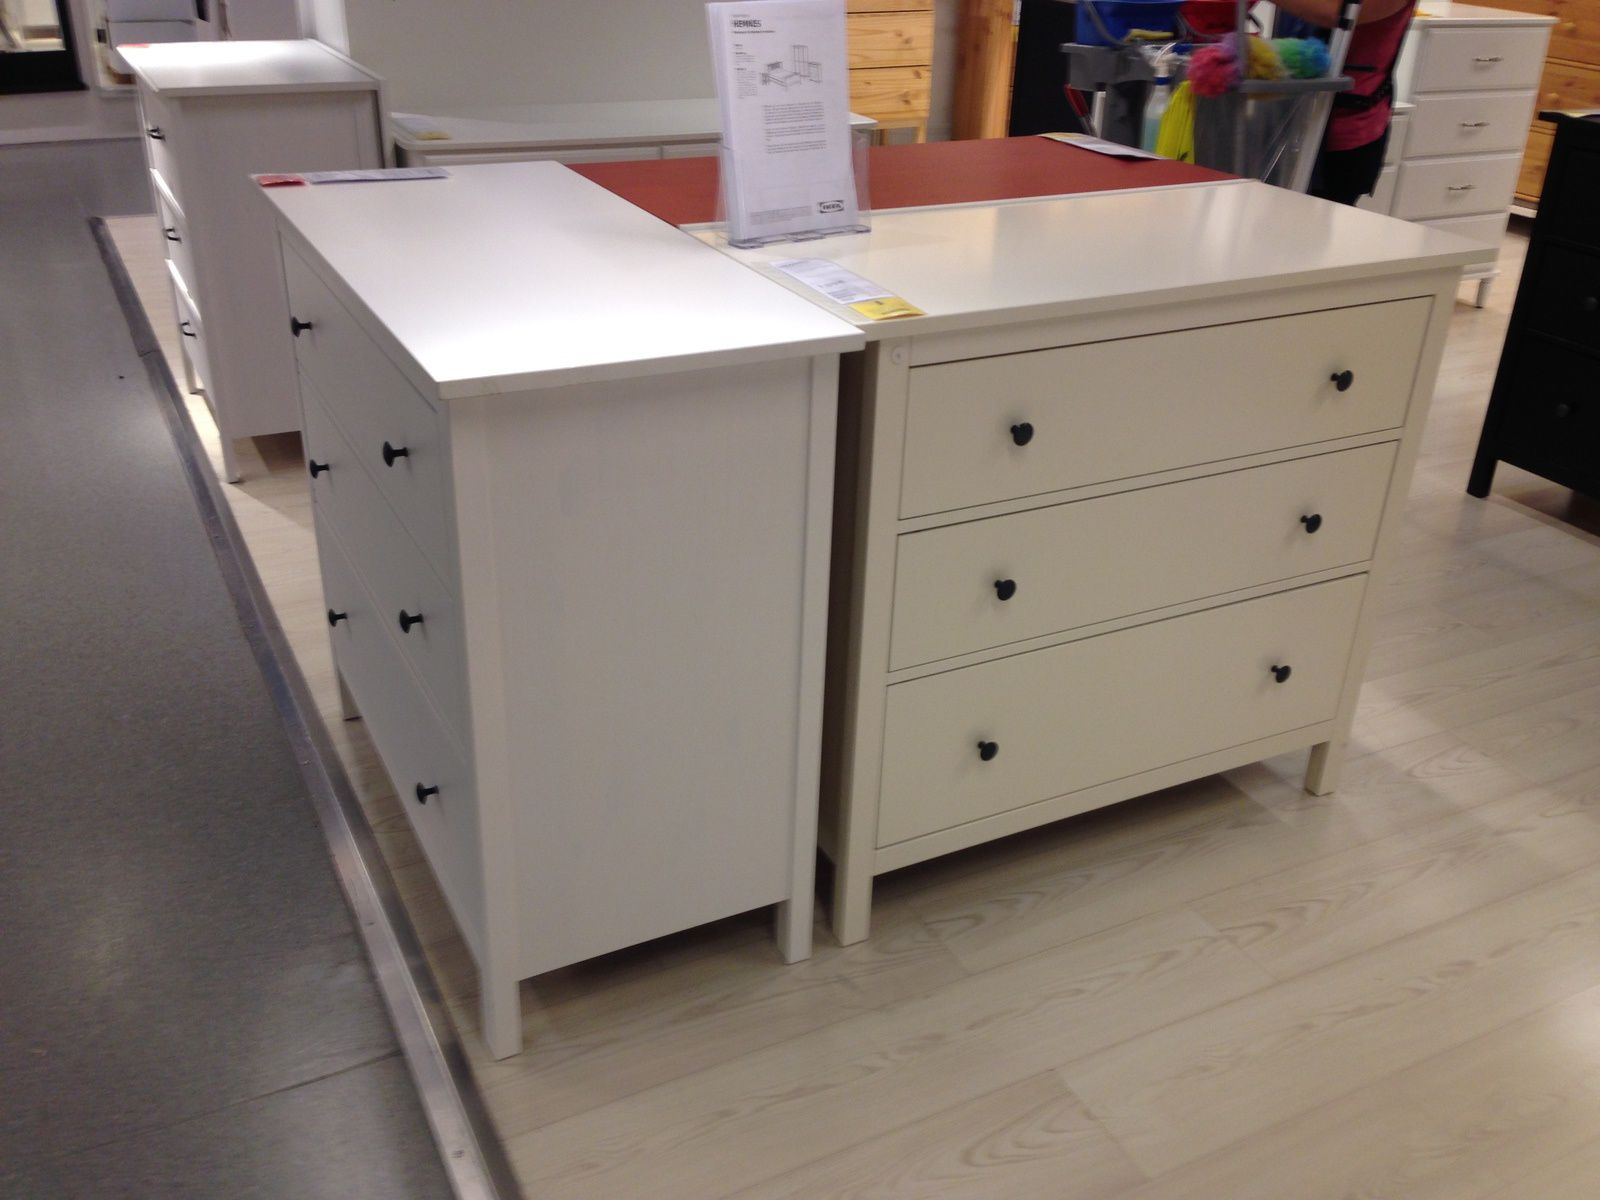 Commode Blanc Ikea Finest Ikea Malm Dresser Hacks With Ikea Hemnes Commode With Commode Blanc  # Commode Bois Massif Ikea